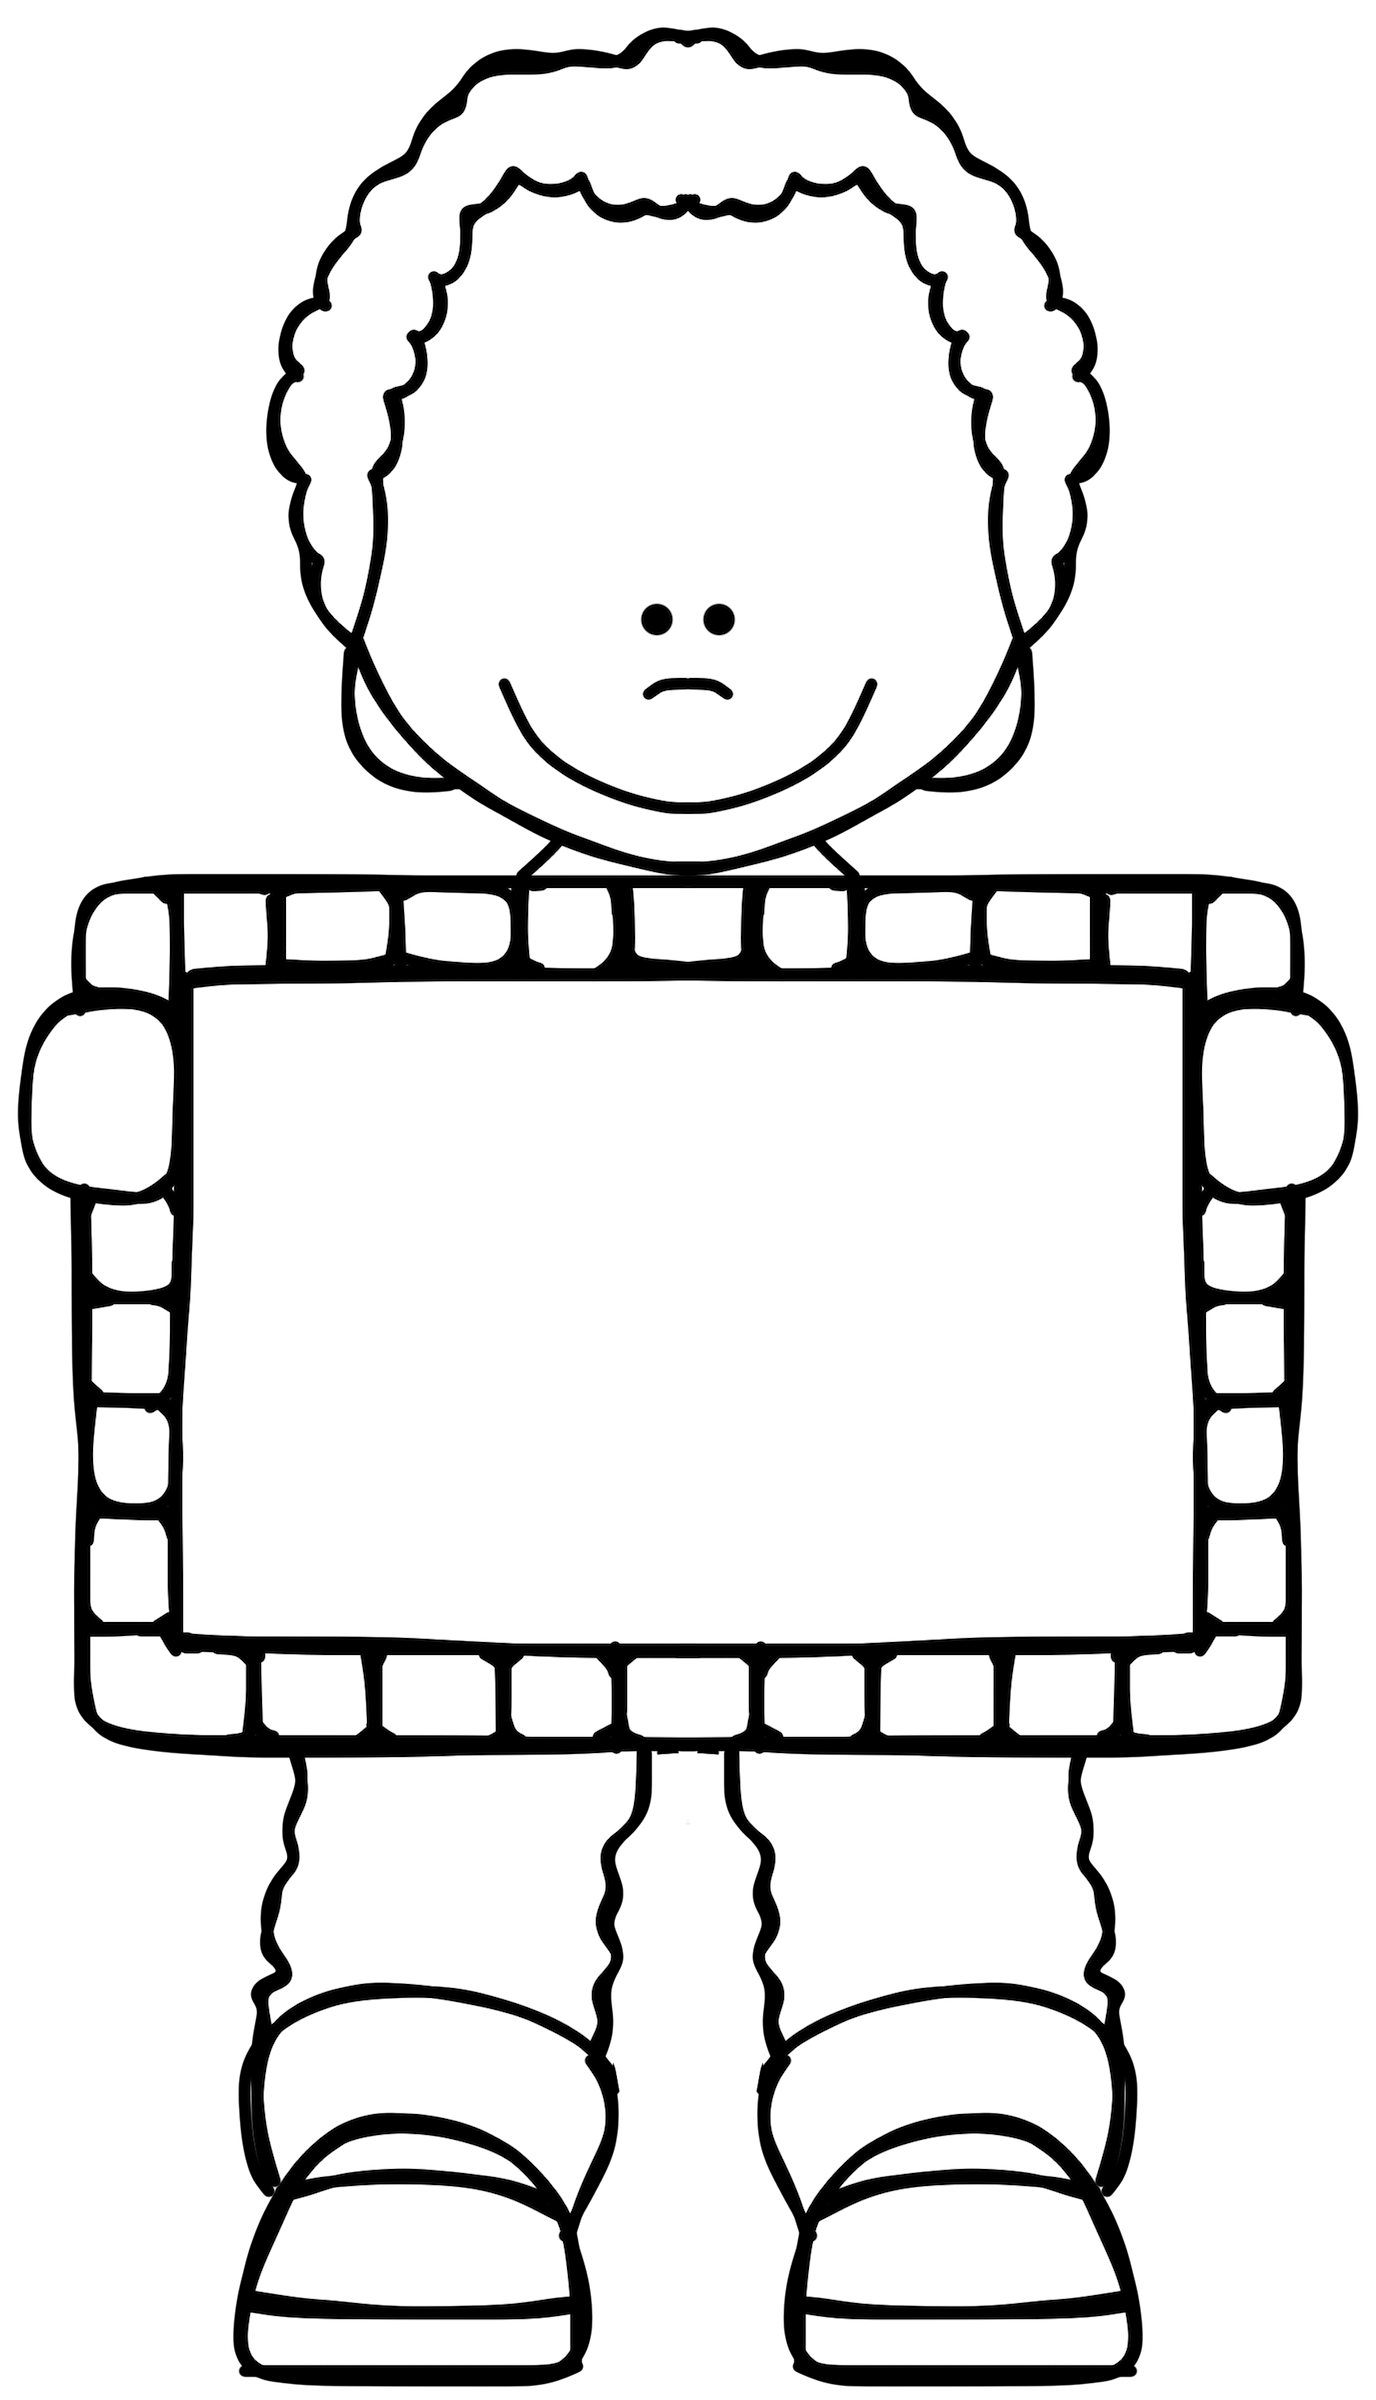 clipart transparent Kindergarten clipart black and white. Pin by vickie wilson